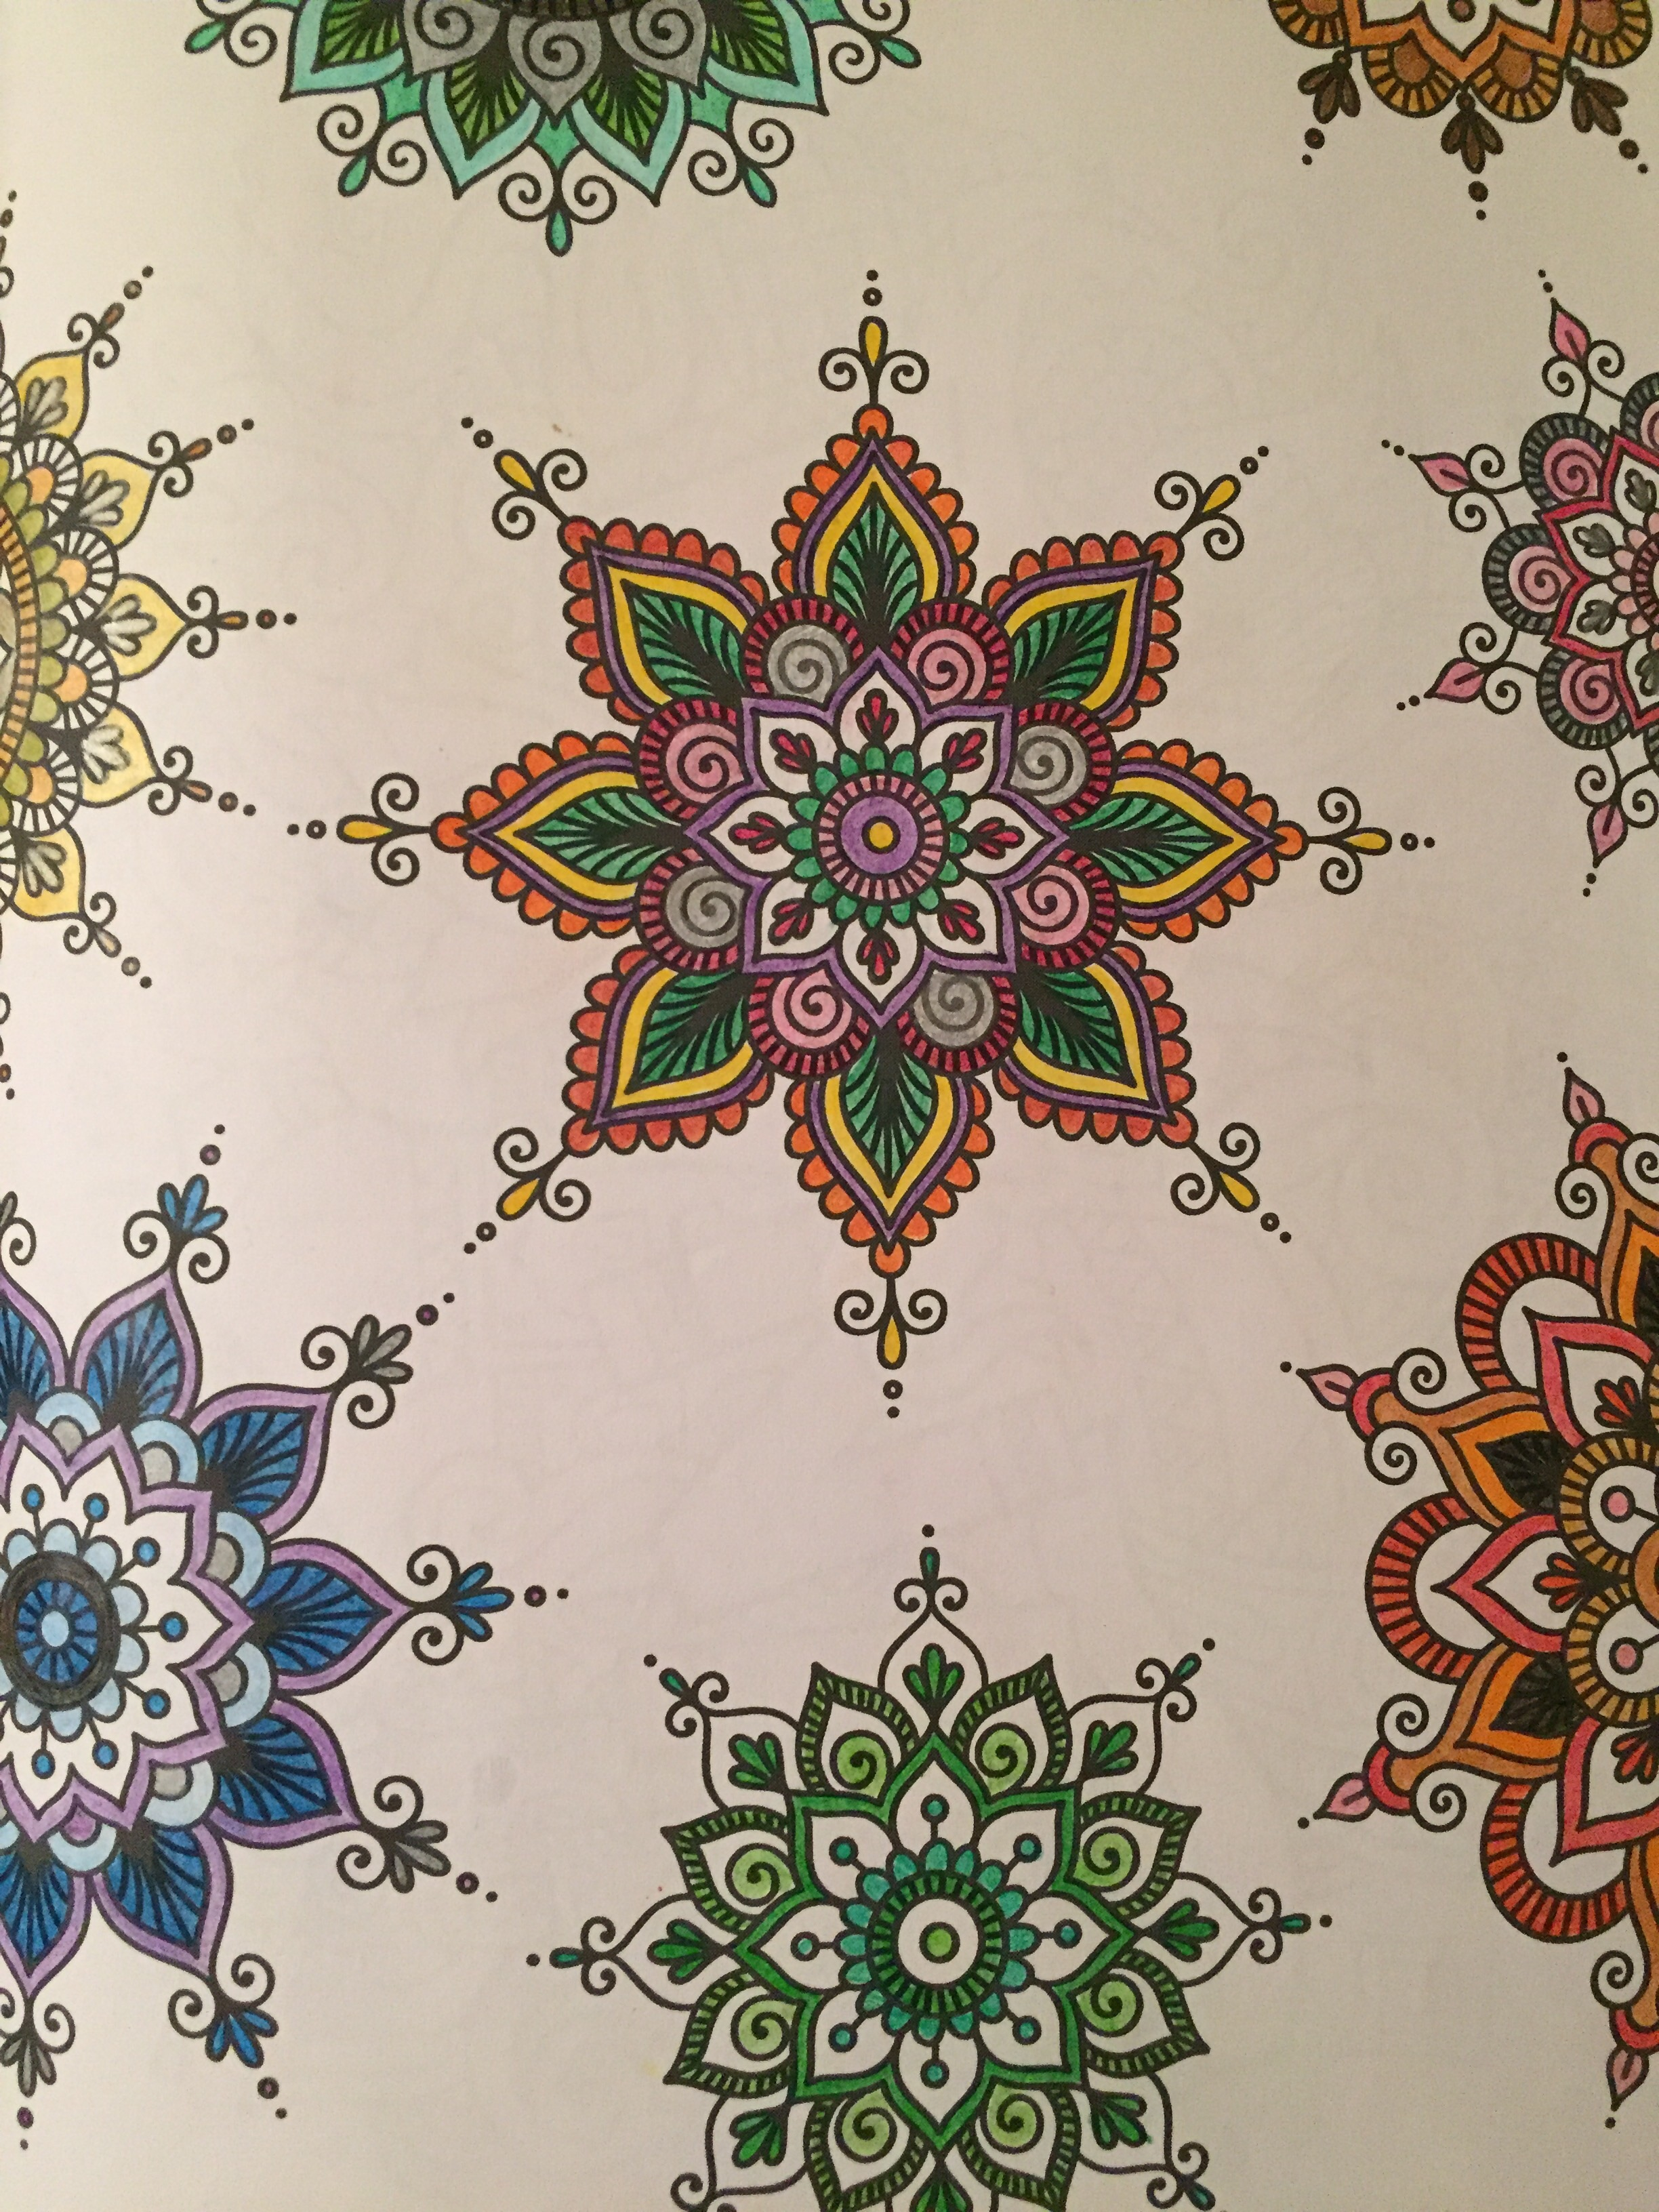 Filled using colored pencils.